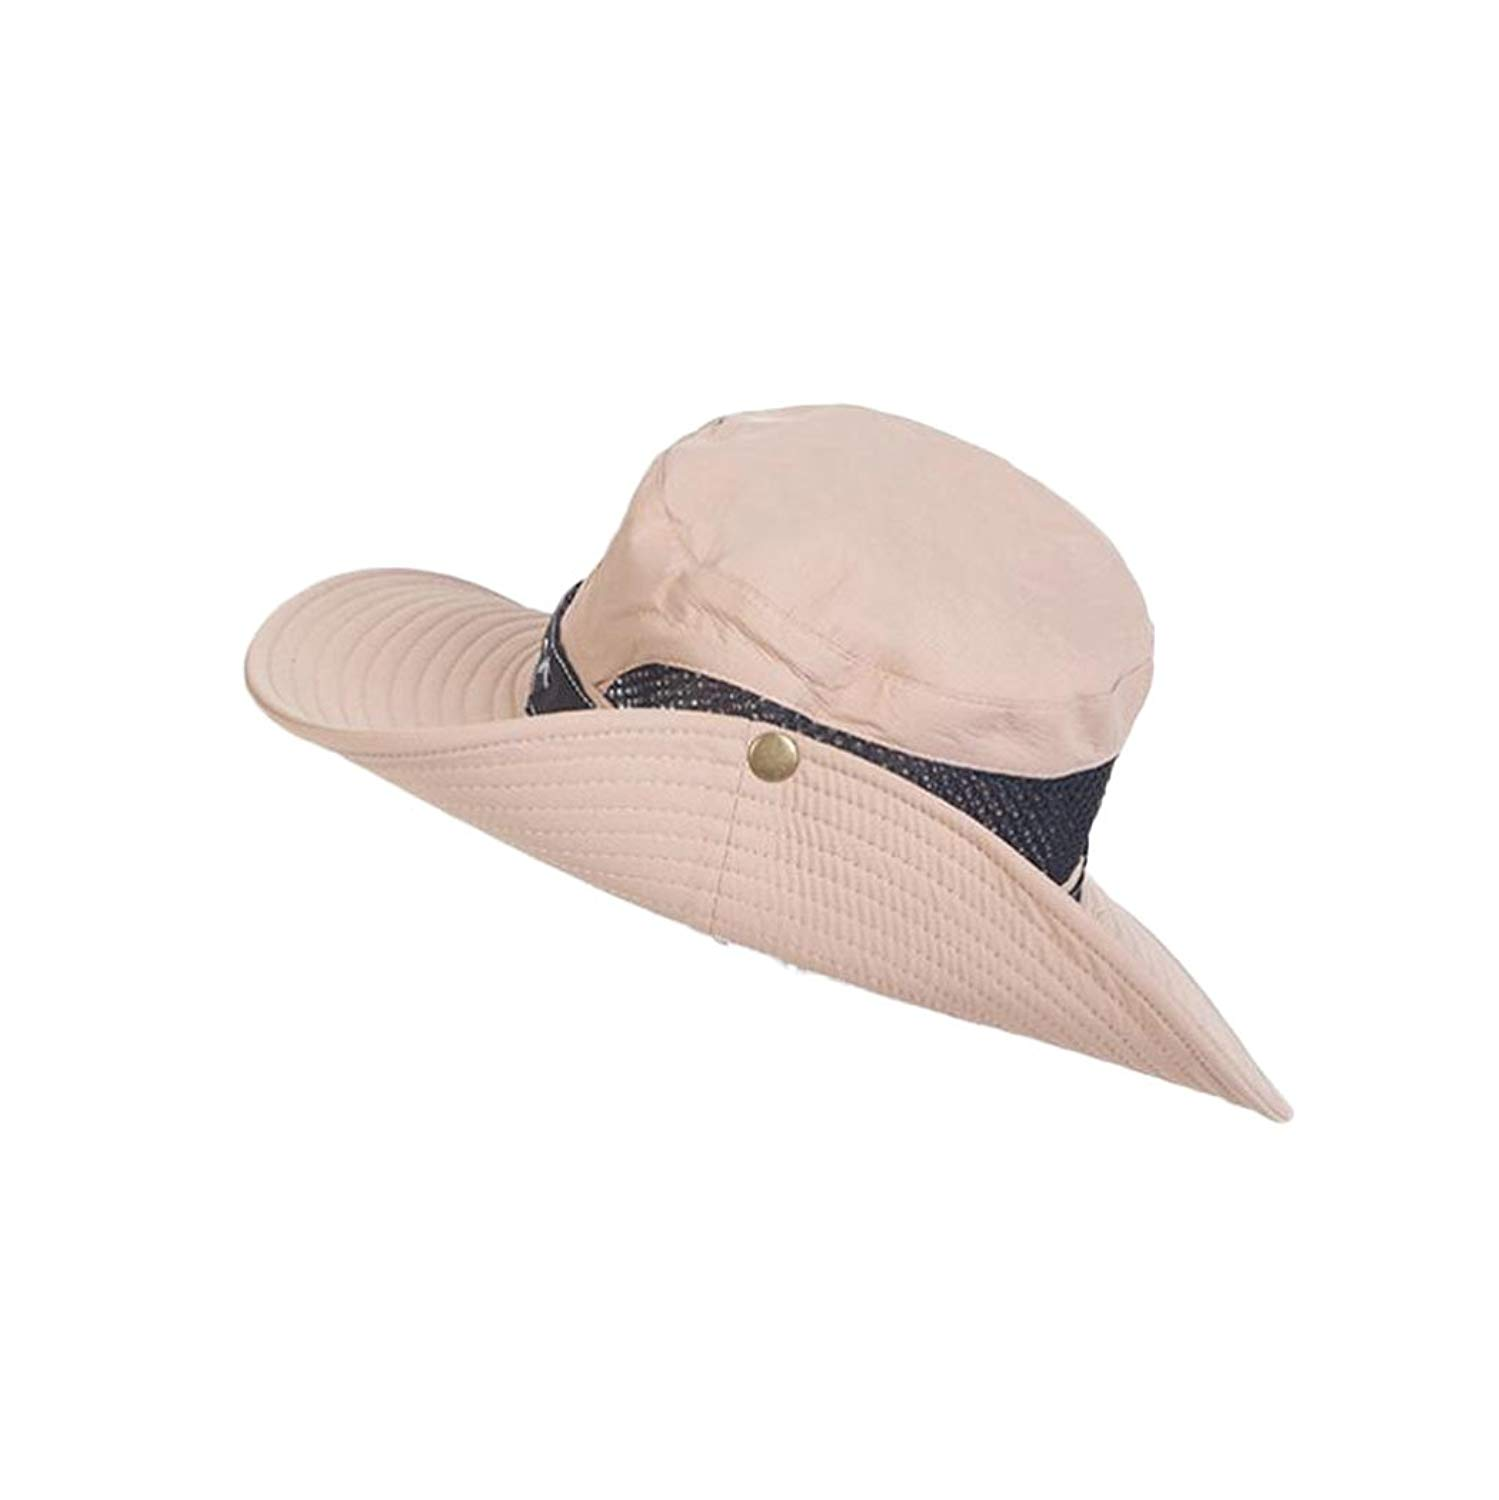 80325d49 Get Quotations · 4URNEED Unisex Wide-Brimmed Hat Summer Sun-Hats Outdoor  Hats Fishing Hats Hunting Hats